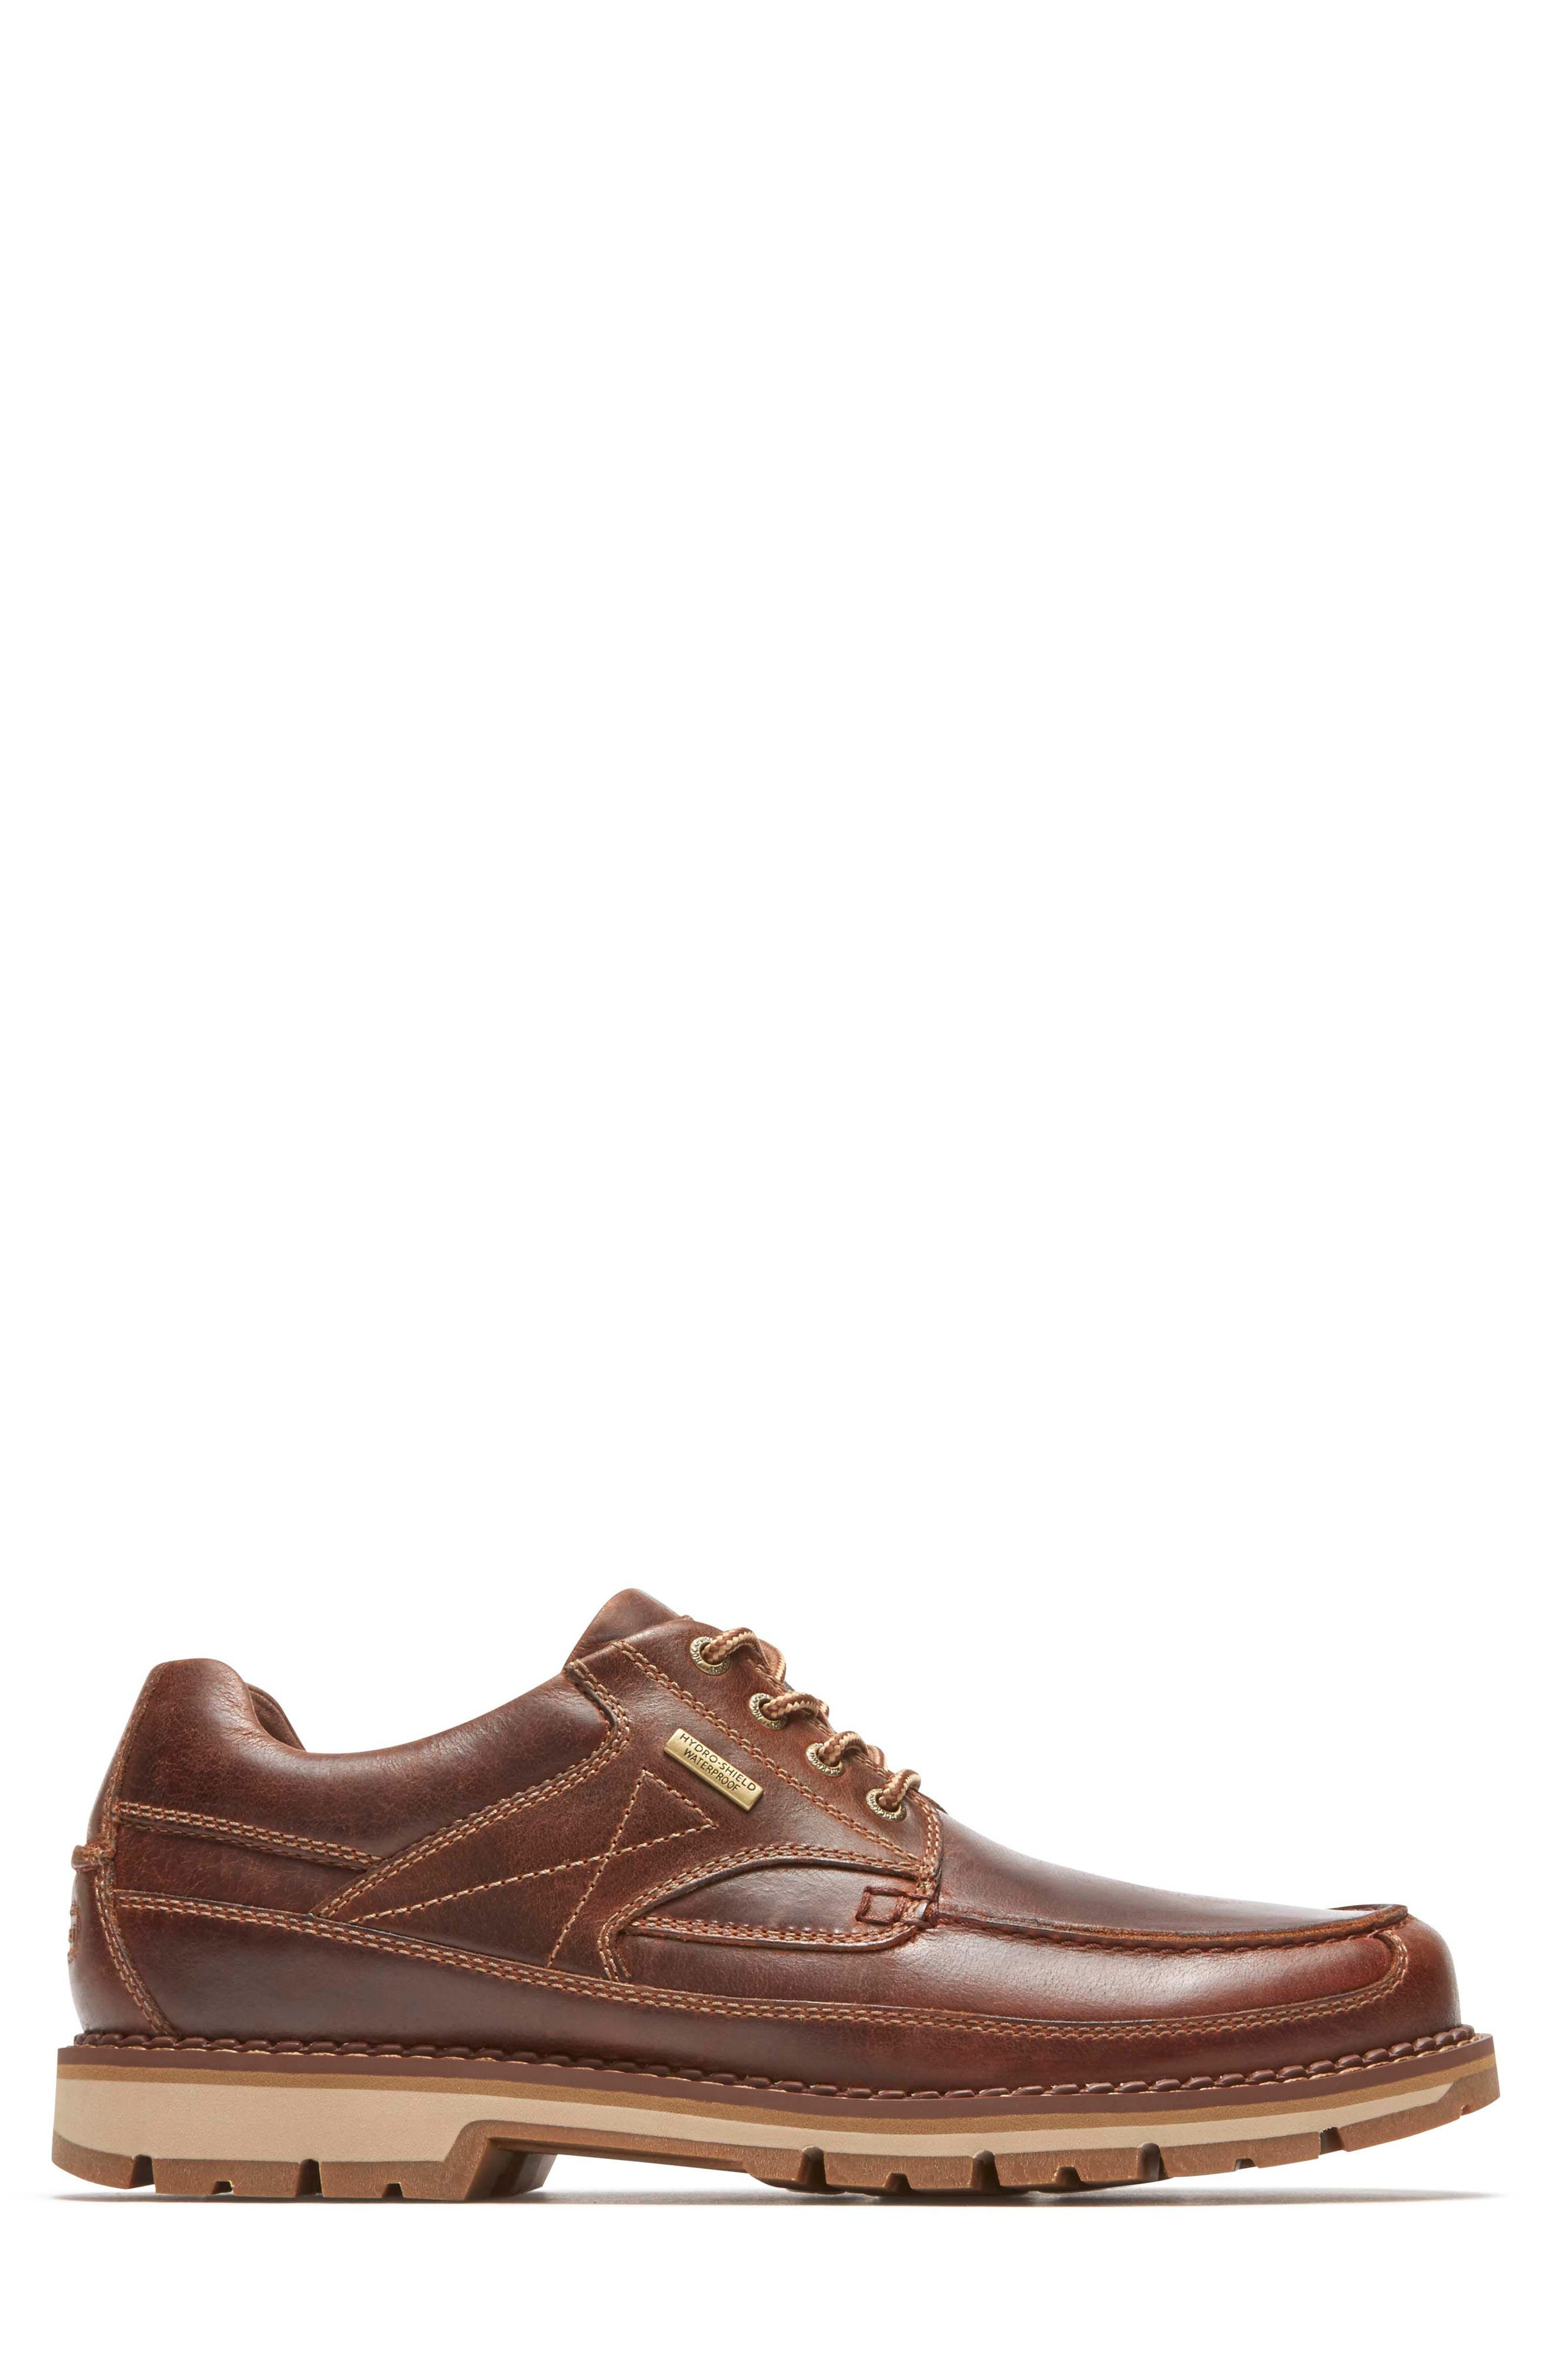 Centry Moc Toe Derby,                             Alternate thumbnail 3, color,                             Brown Leather